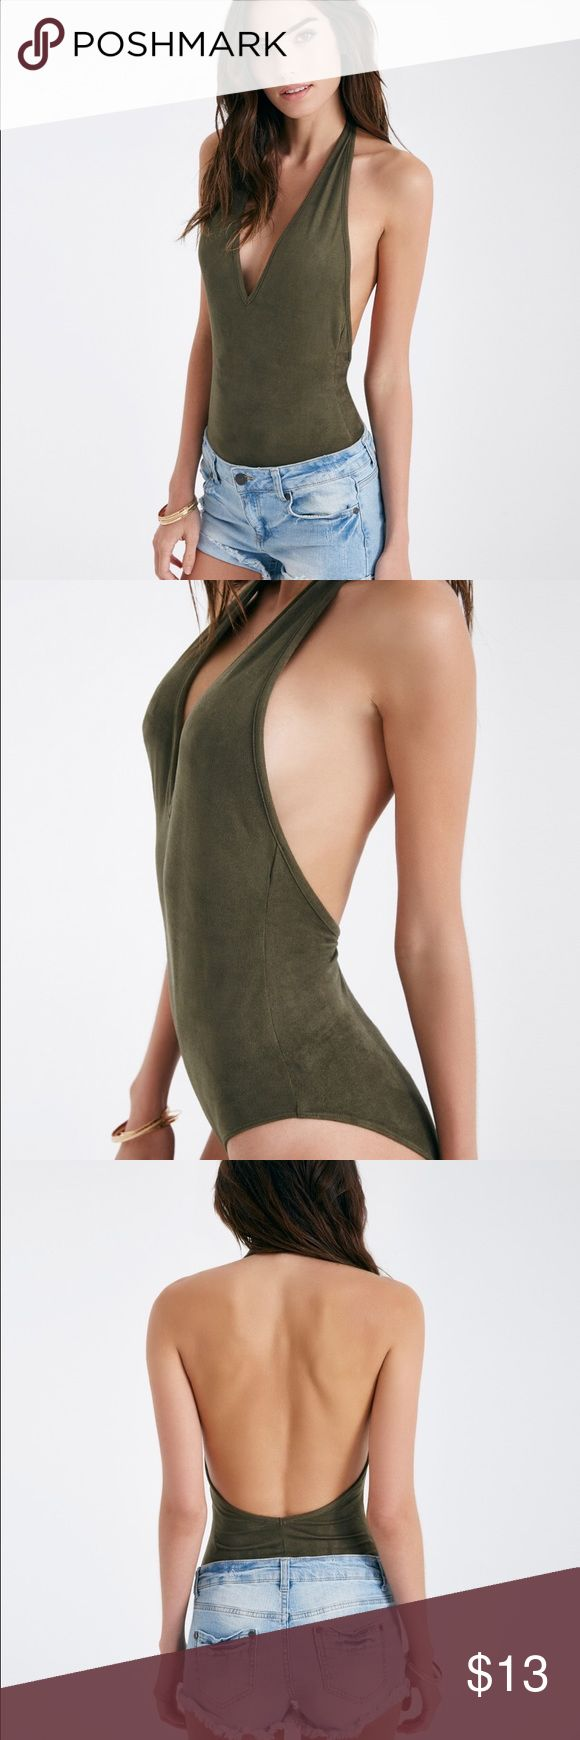 NEW SUEDE HALTER BODYSUIT Low Back M A bodysuit featuring a stretchy faux suede knit body, a halter neckline, and a low back. The bodysuit has a full coverage bottom.   V-Neckline 2-Snap Button Closure Halter Strap Unlined Polyester / Spandex Hand Wash Imported Wet Seal Intimates & Sleepwear Shapewear